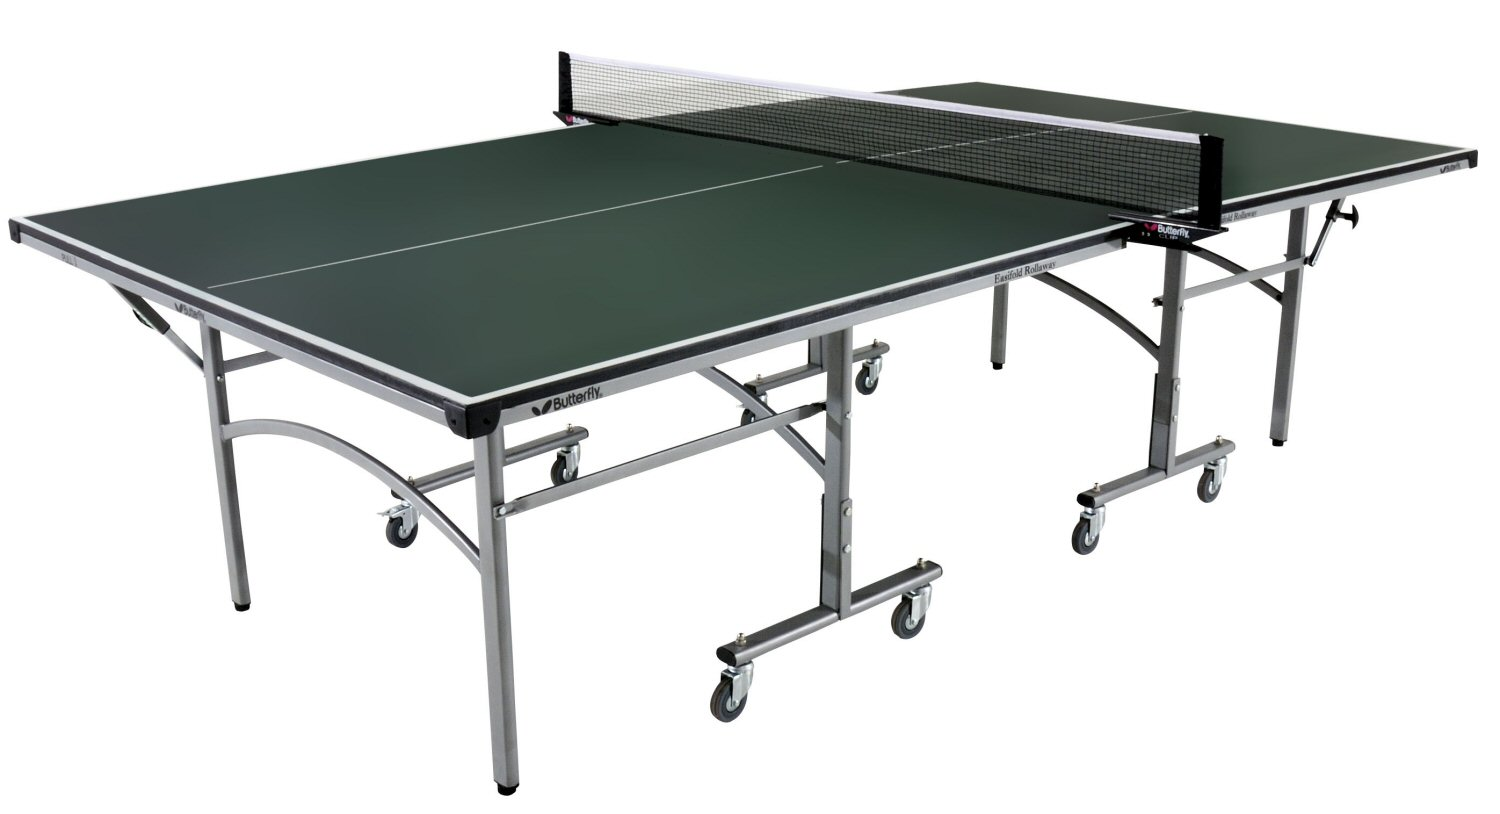 Table tennis tables accessories equipment - Equipment for table tennis ...